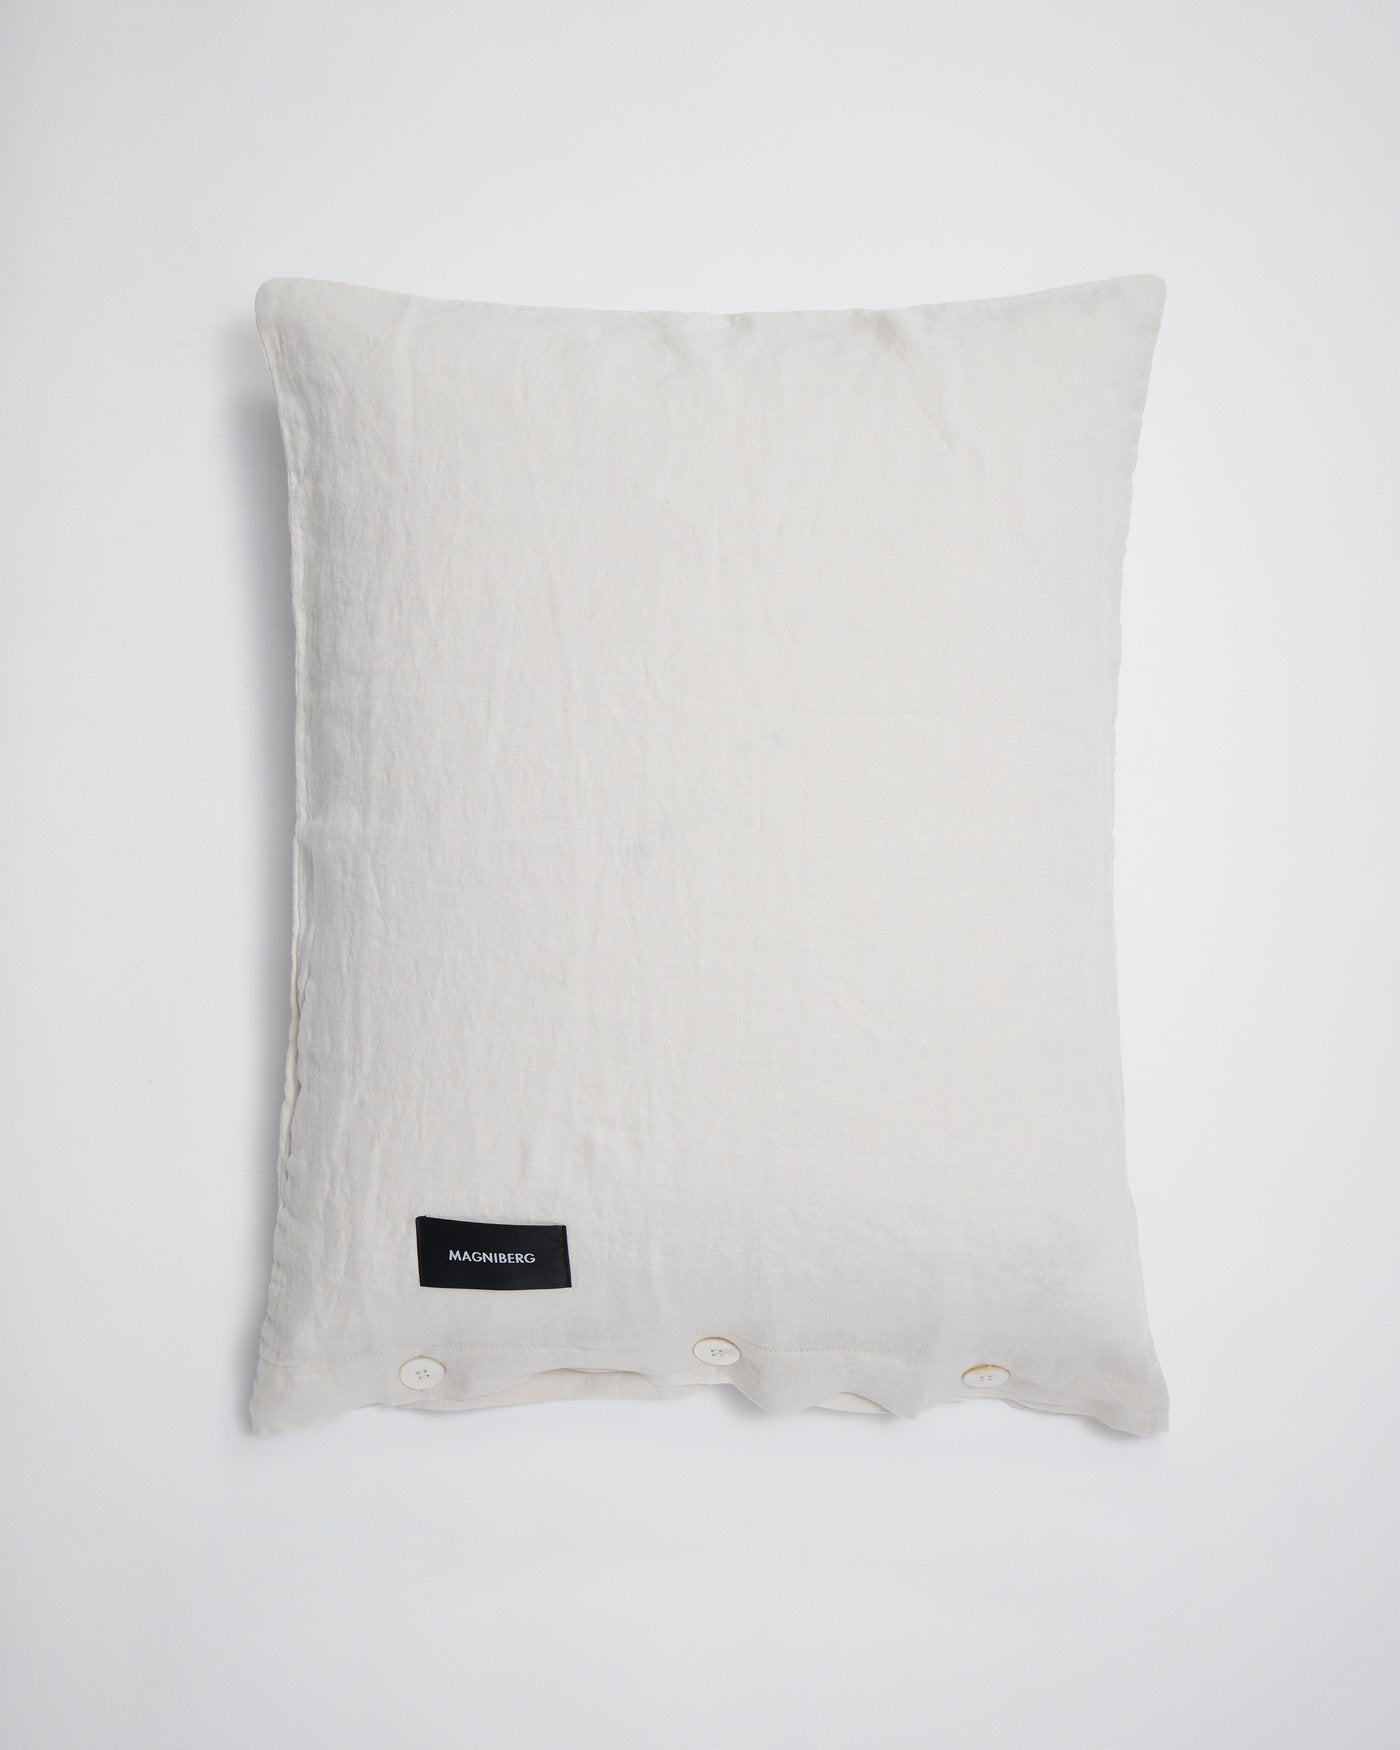 Magniberg Mother Pillow Case Linen Beige